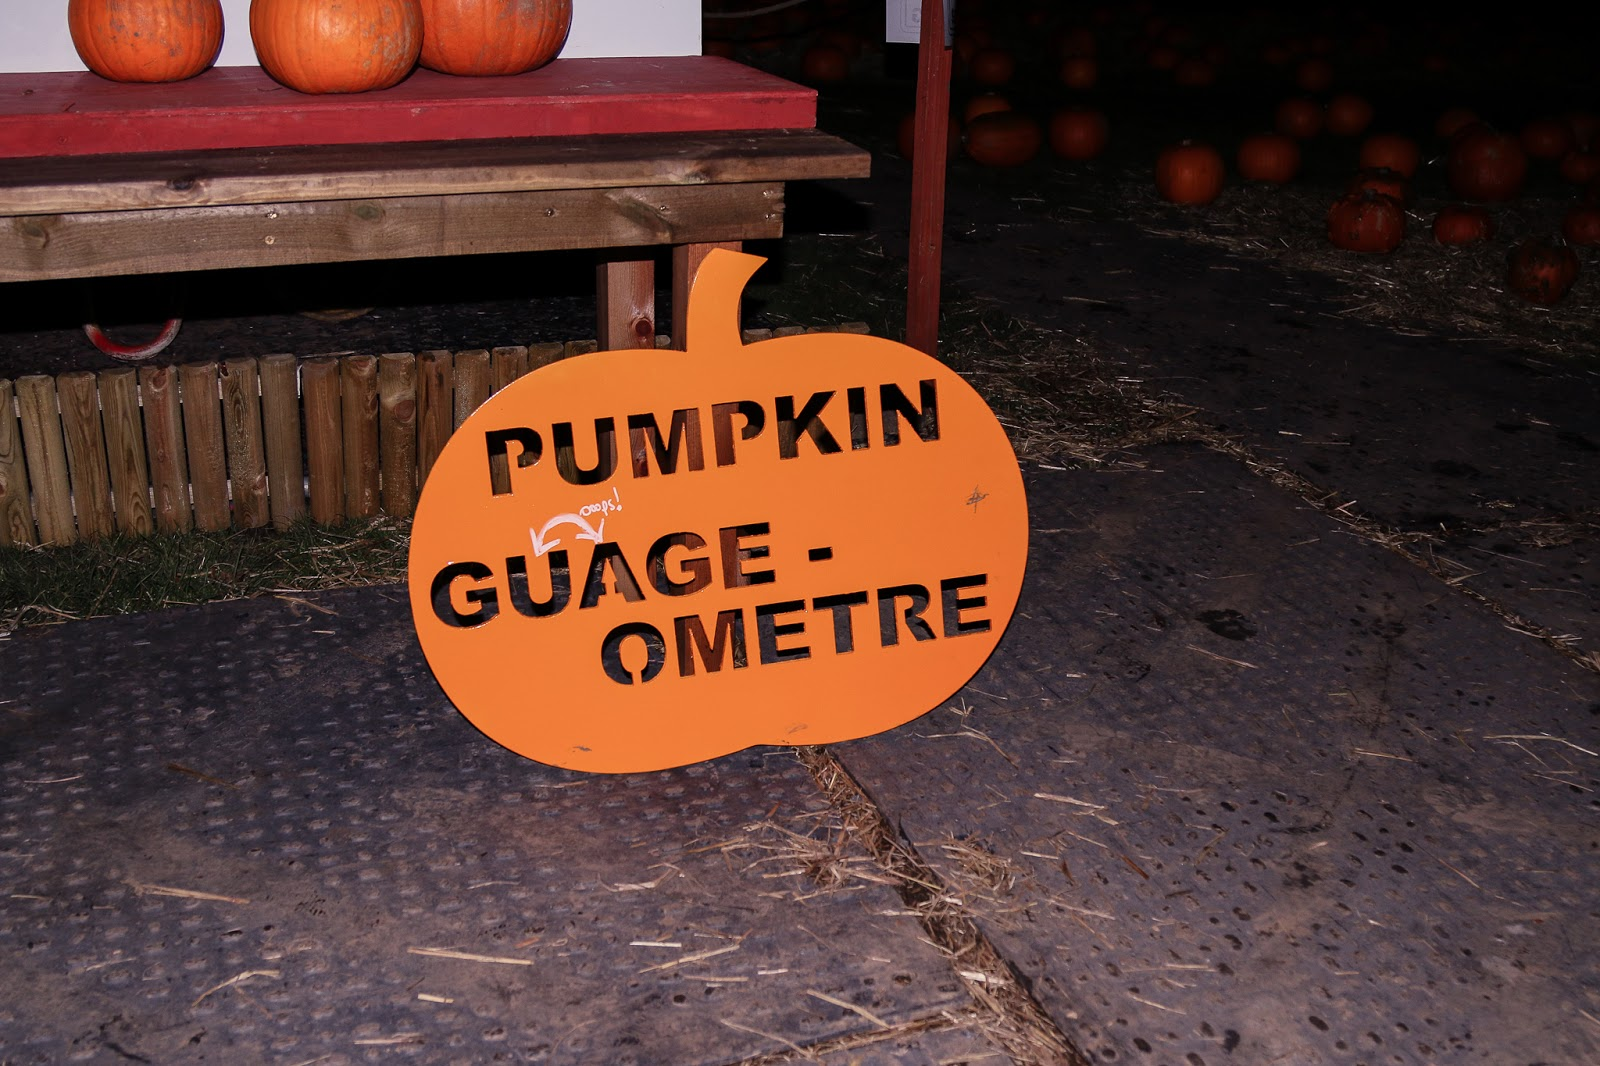 close up photo of the pumpkin gauge that is in the shape of a pumpkin, orange in colour.